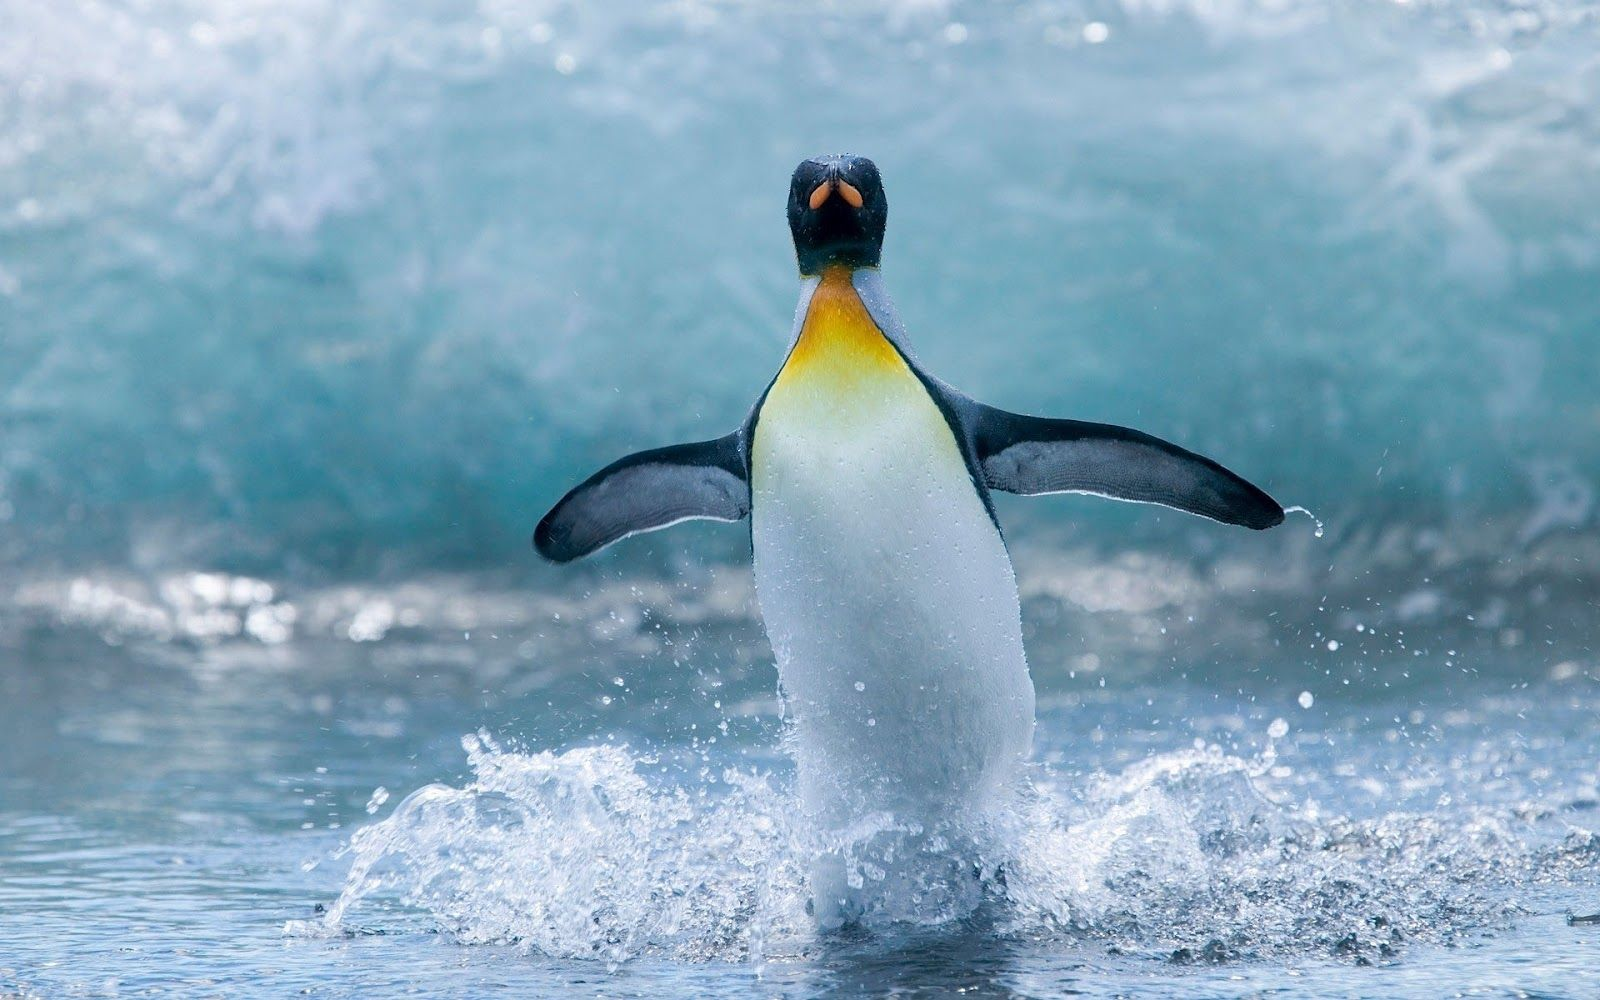 Cute penguins cute mighty pictures - Penguin Wallpapers Emperor Penguinsfunny